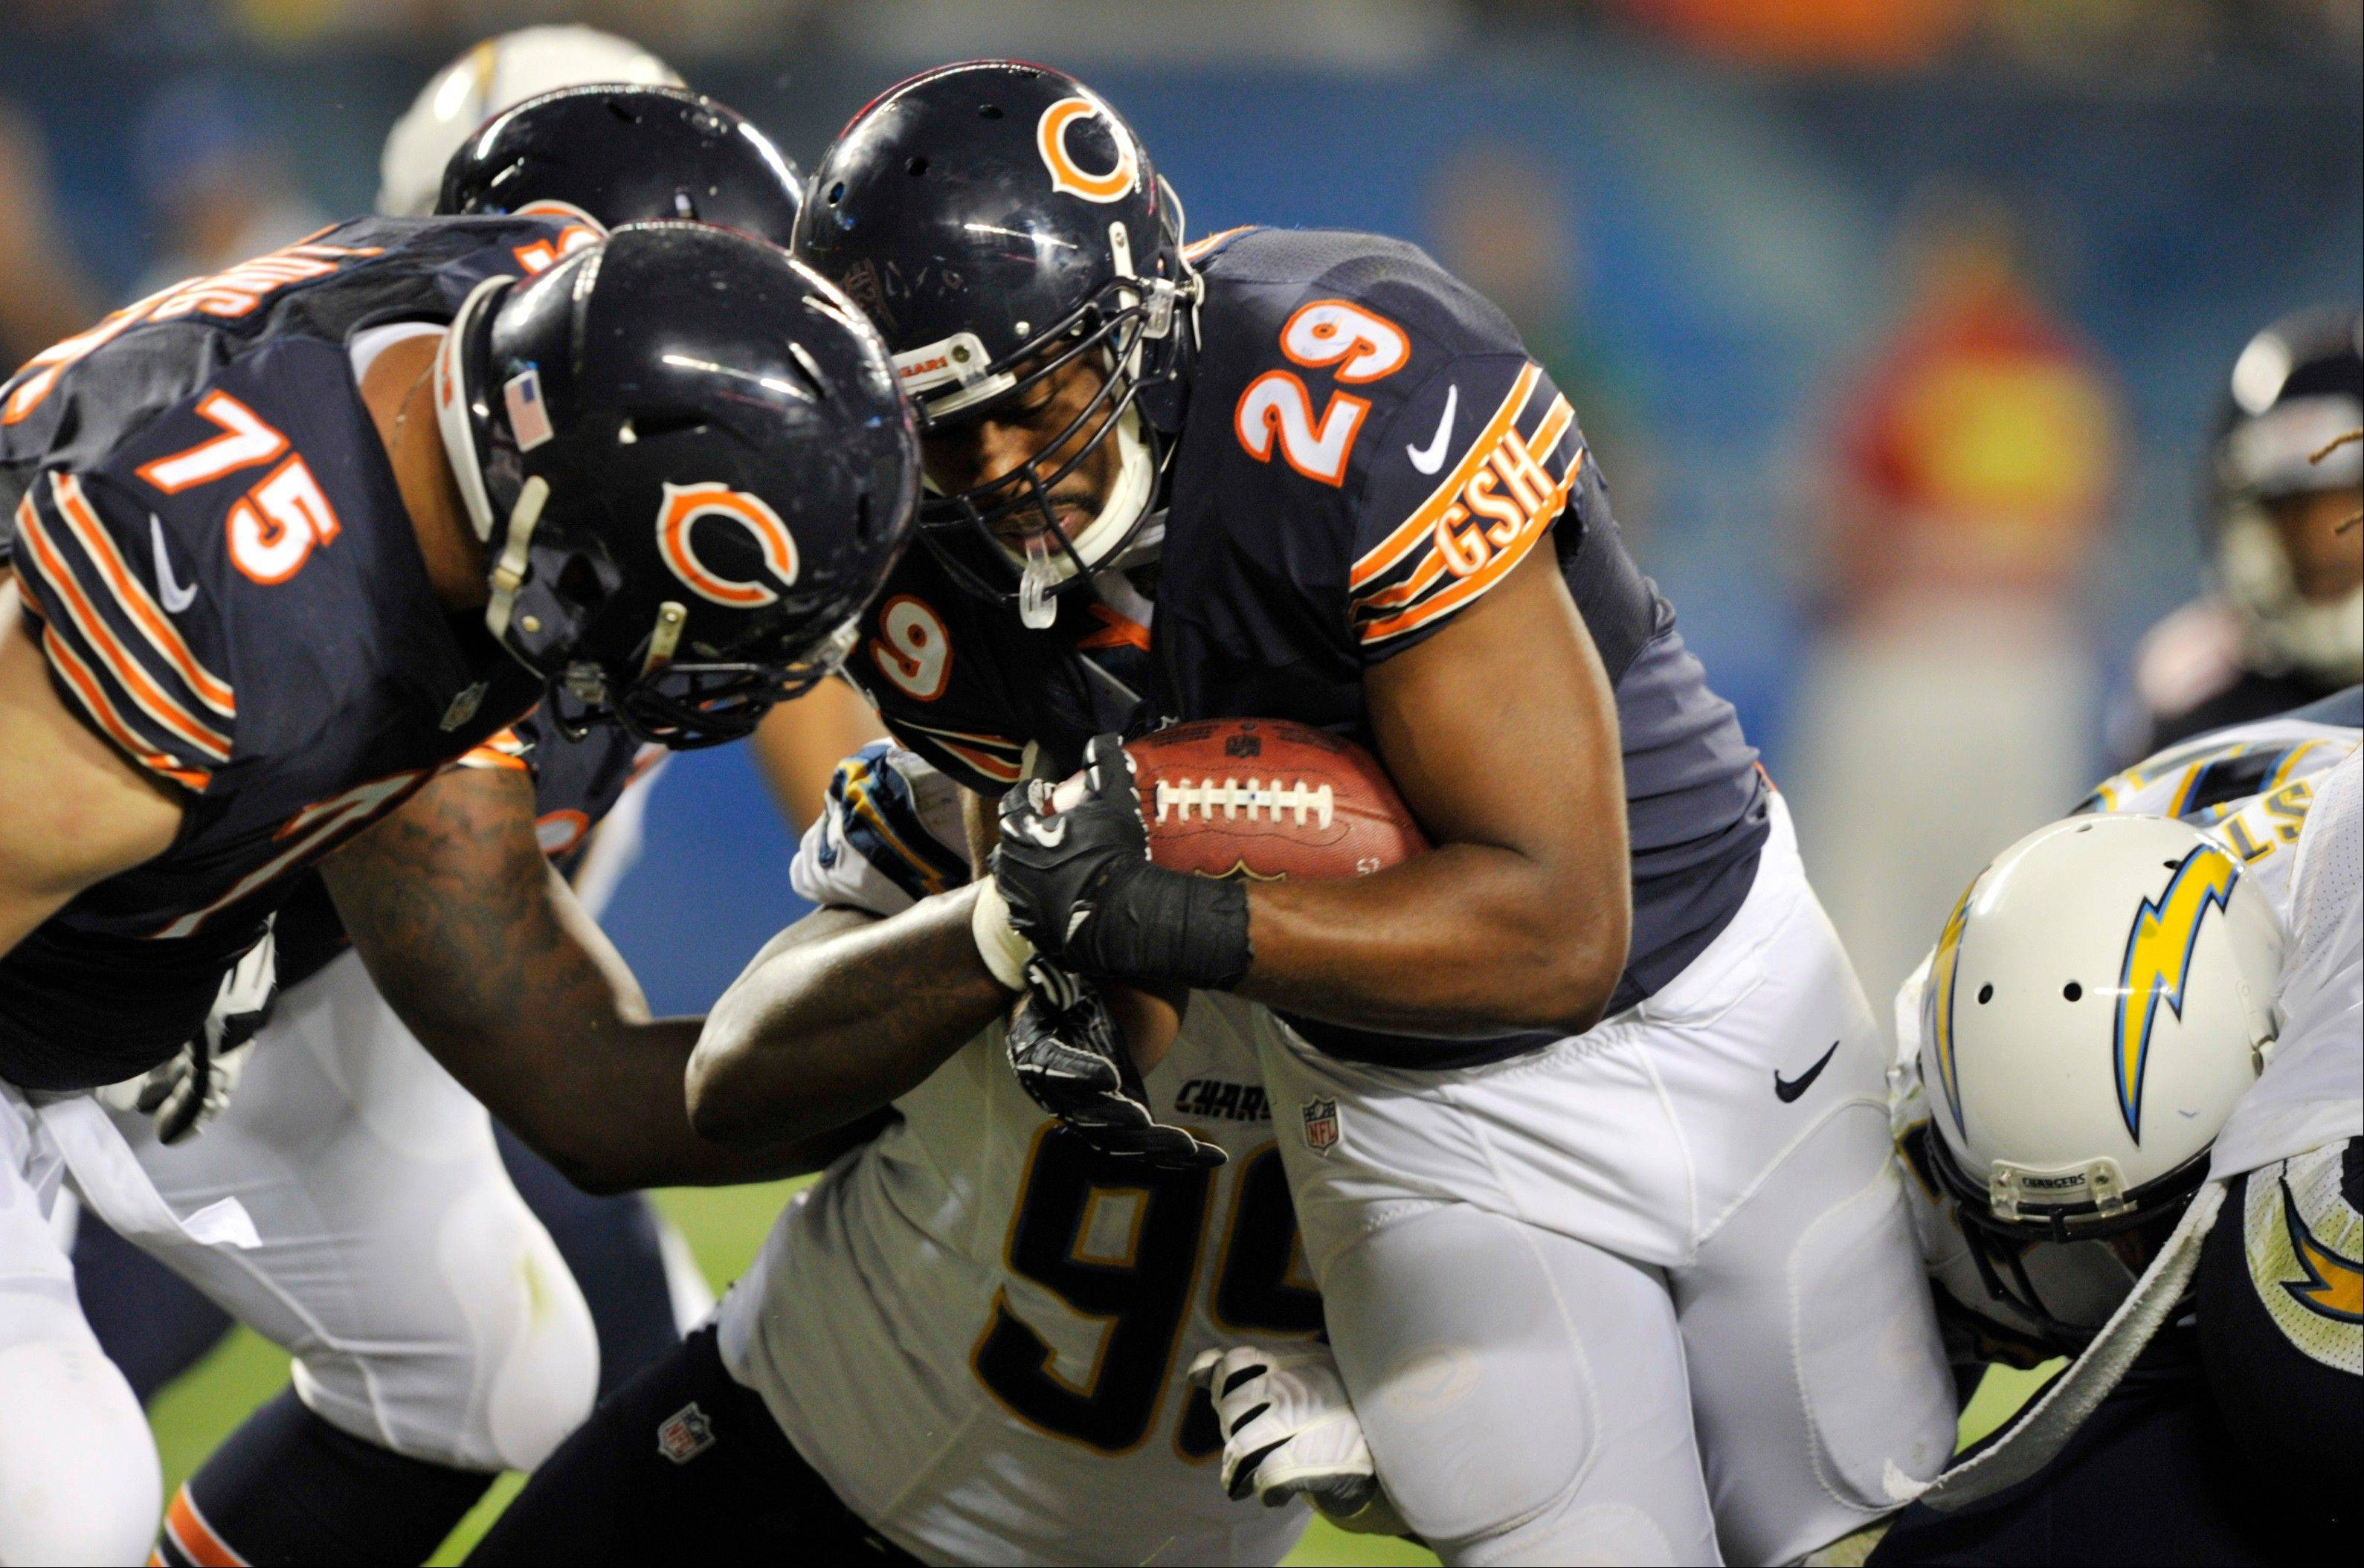 Bears running back Michael Bush (29) runs for a touchdown during the second half of the preseason NFL game against the San Diego Chargers Thursday in Chicago. (AP Photo/Jim Prisching)